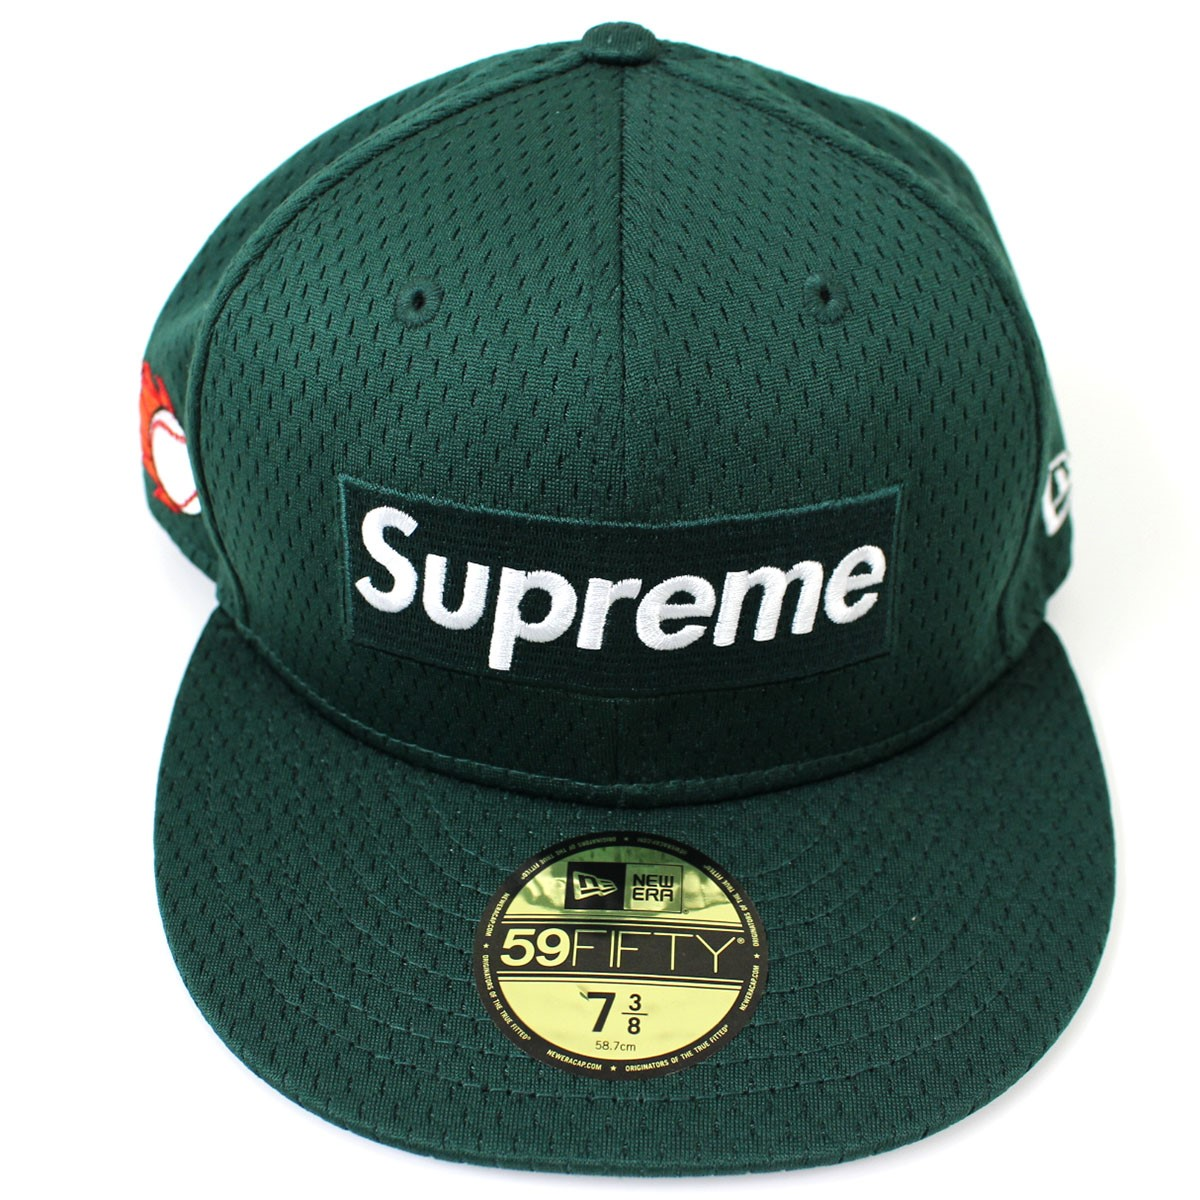 Supreme X NEW ERA Mesh Box Logo New Era Cap 2018SS mesh box logo cap hat  green size  7 3 8(58.7cm) (シュプリームニューエラ) 4f4b8e9a35b3